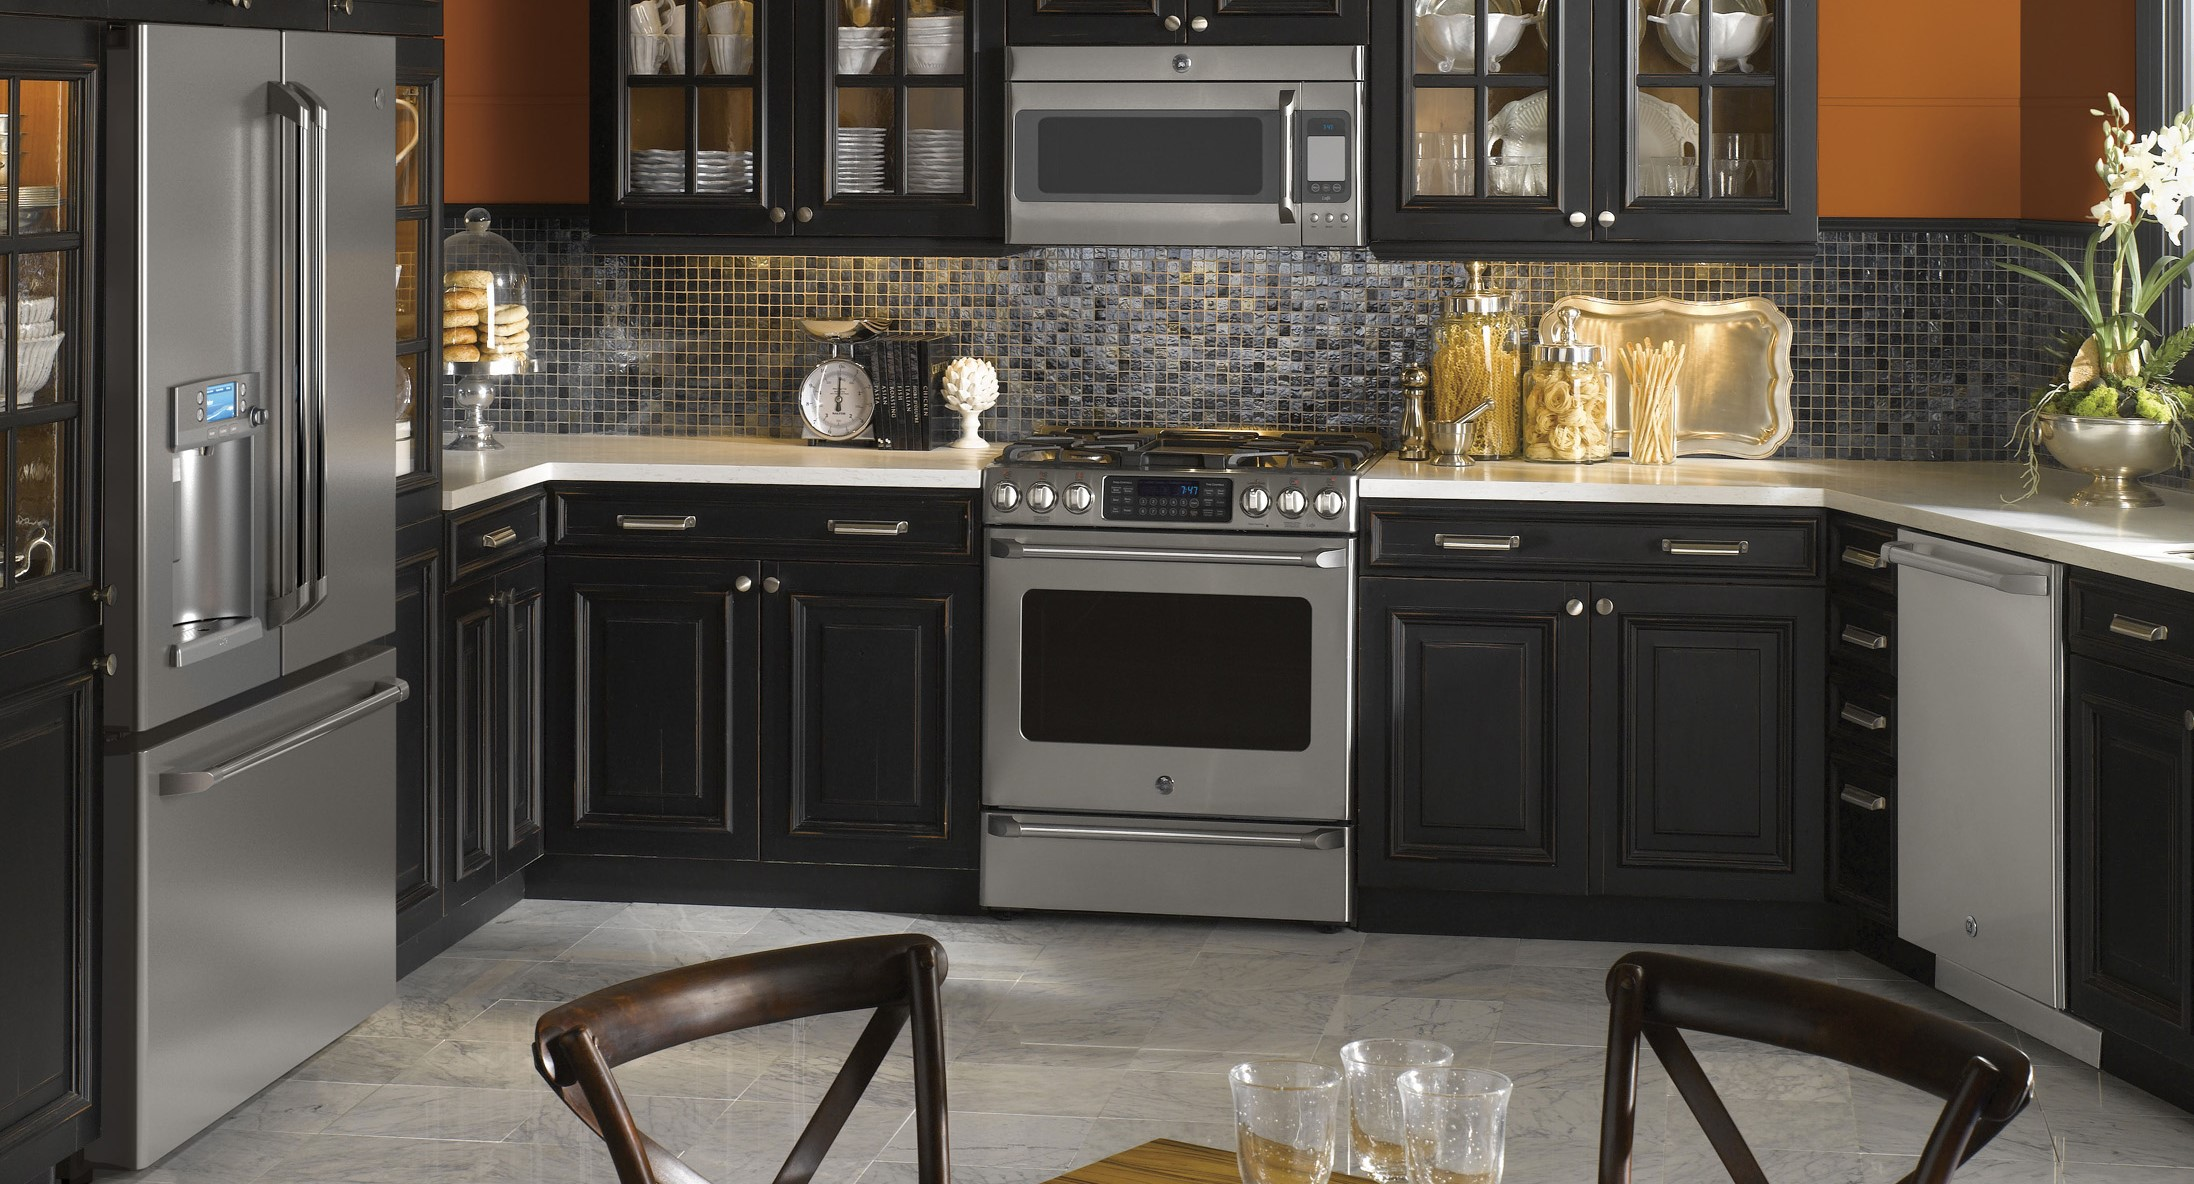 black_orange_kitchen-4